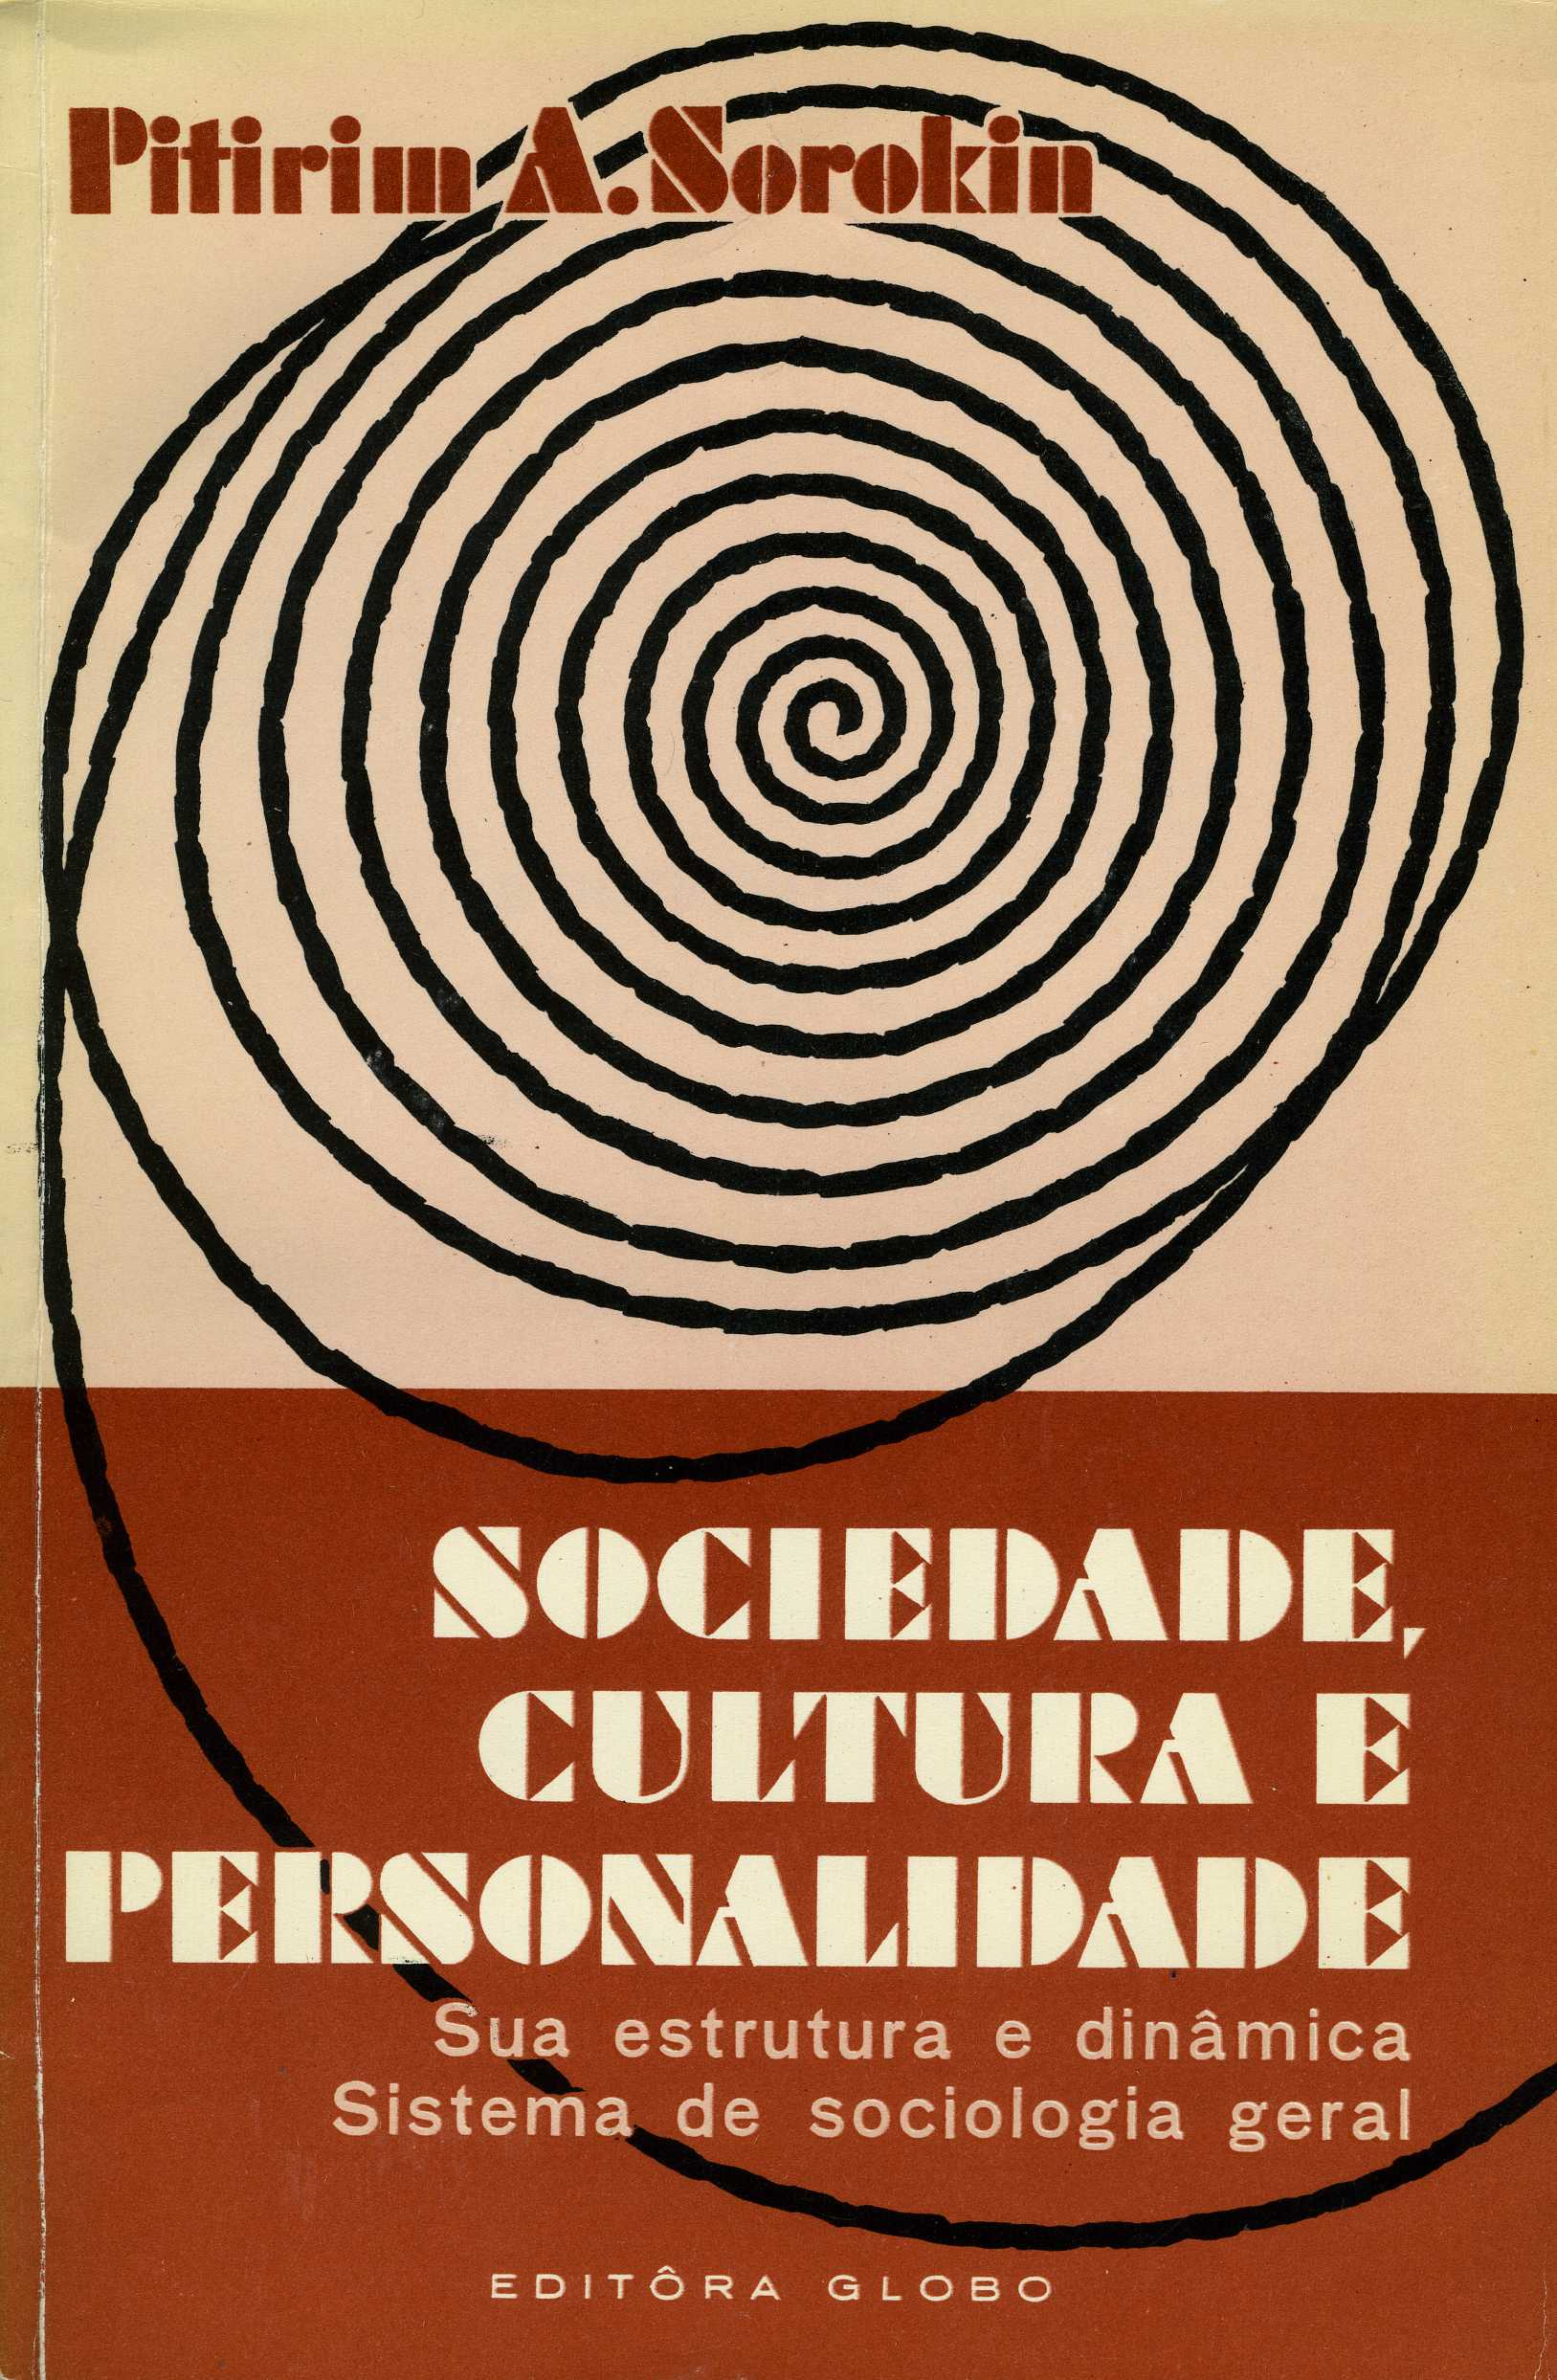 Society Cultue Personality_Portugal062.jpg